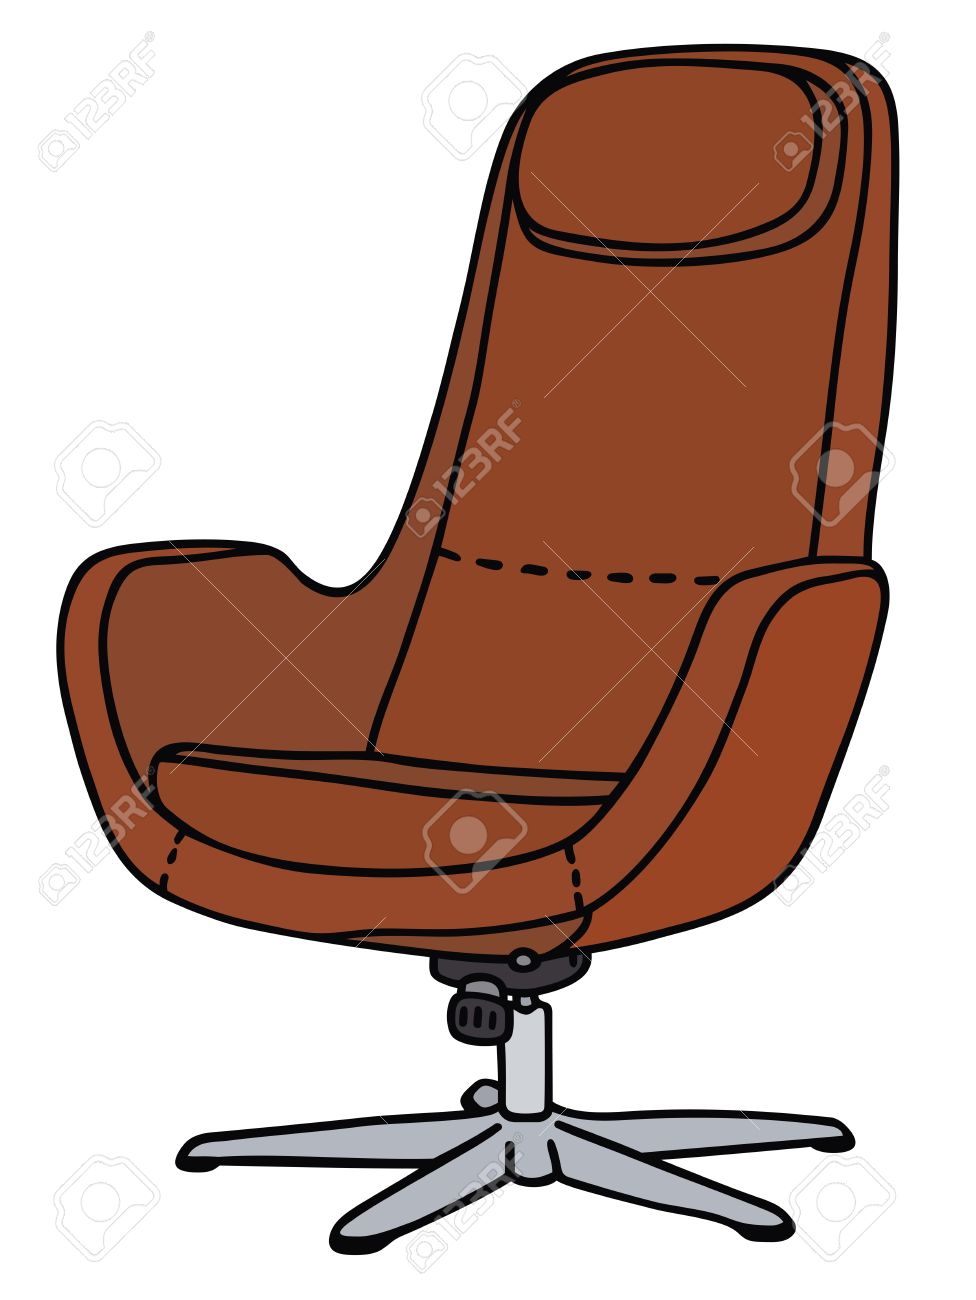 976x1300 Hand Drawing Of A Red Armchair Royalty Free Cliparts, Vectors,